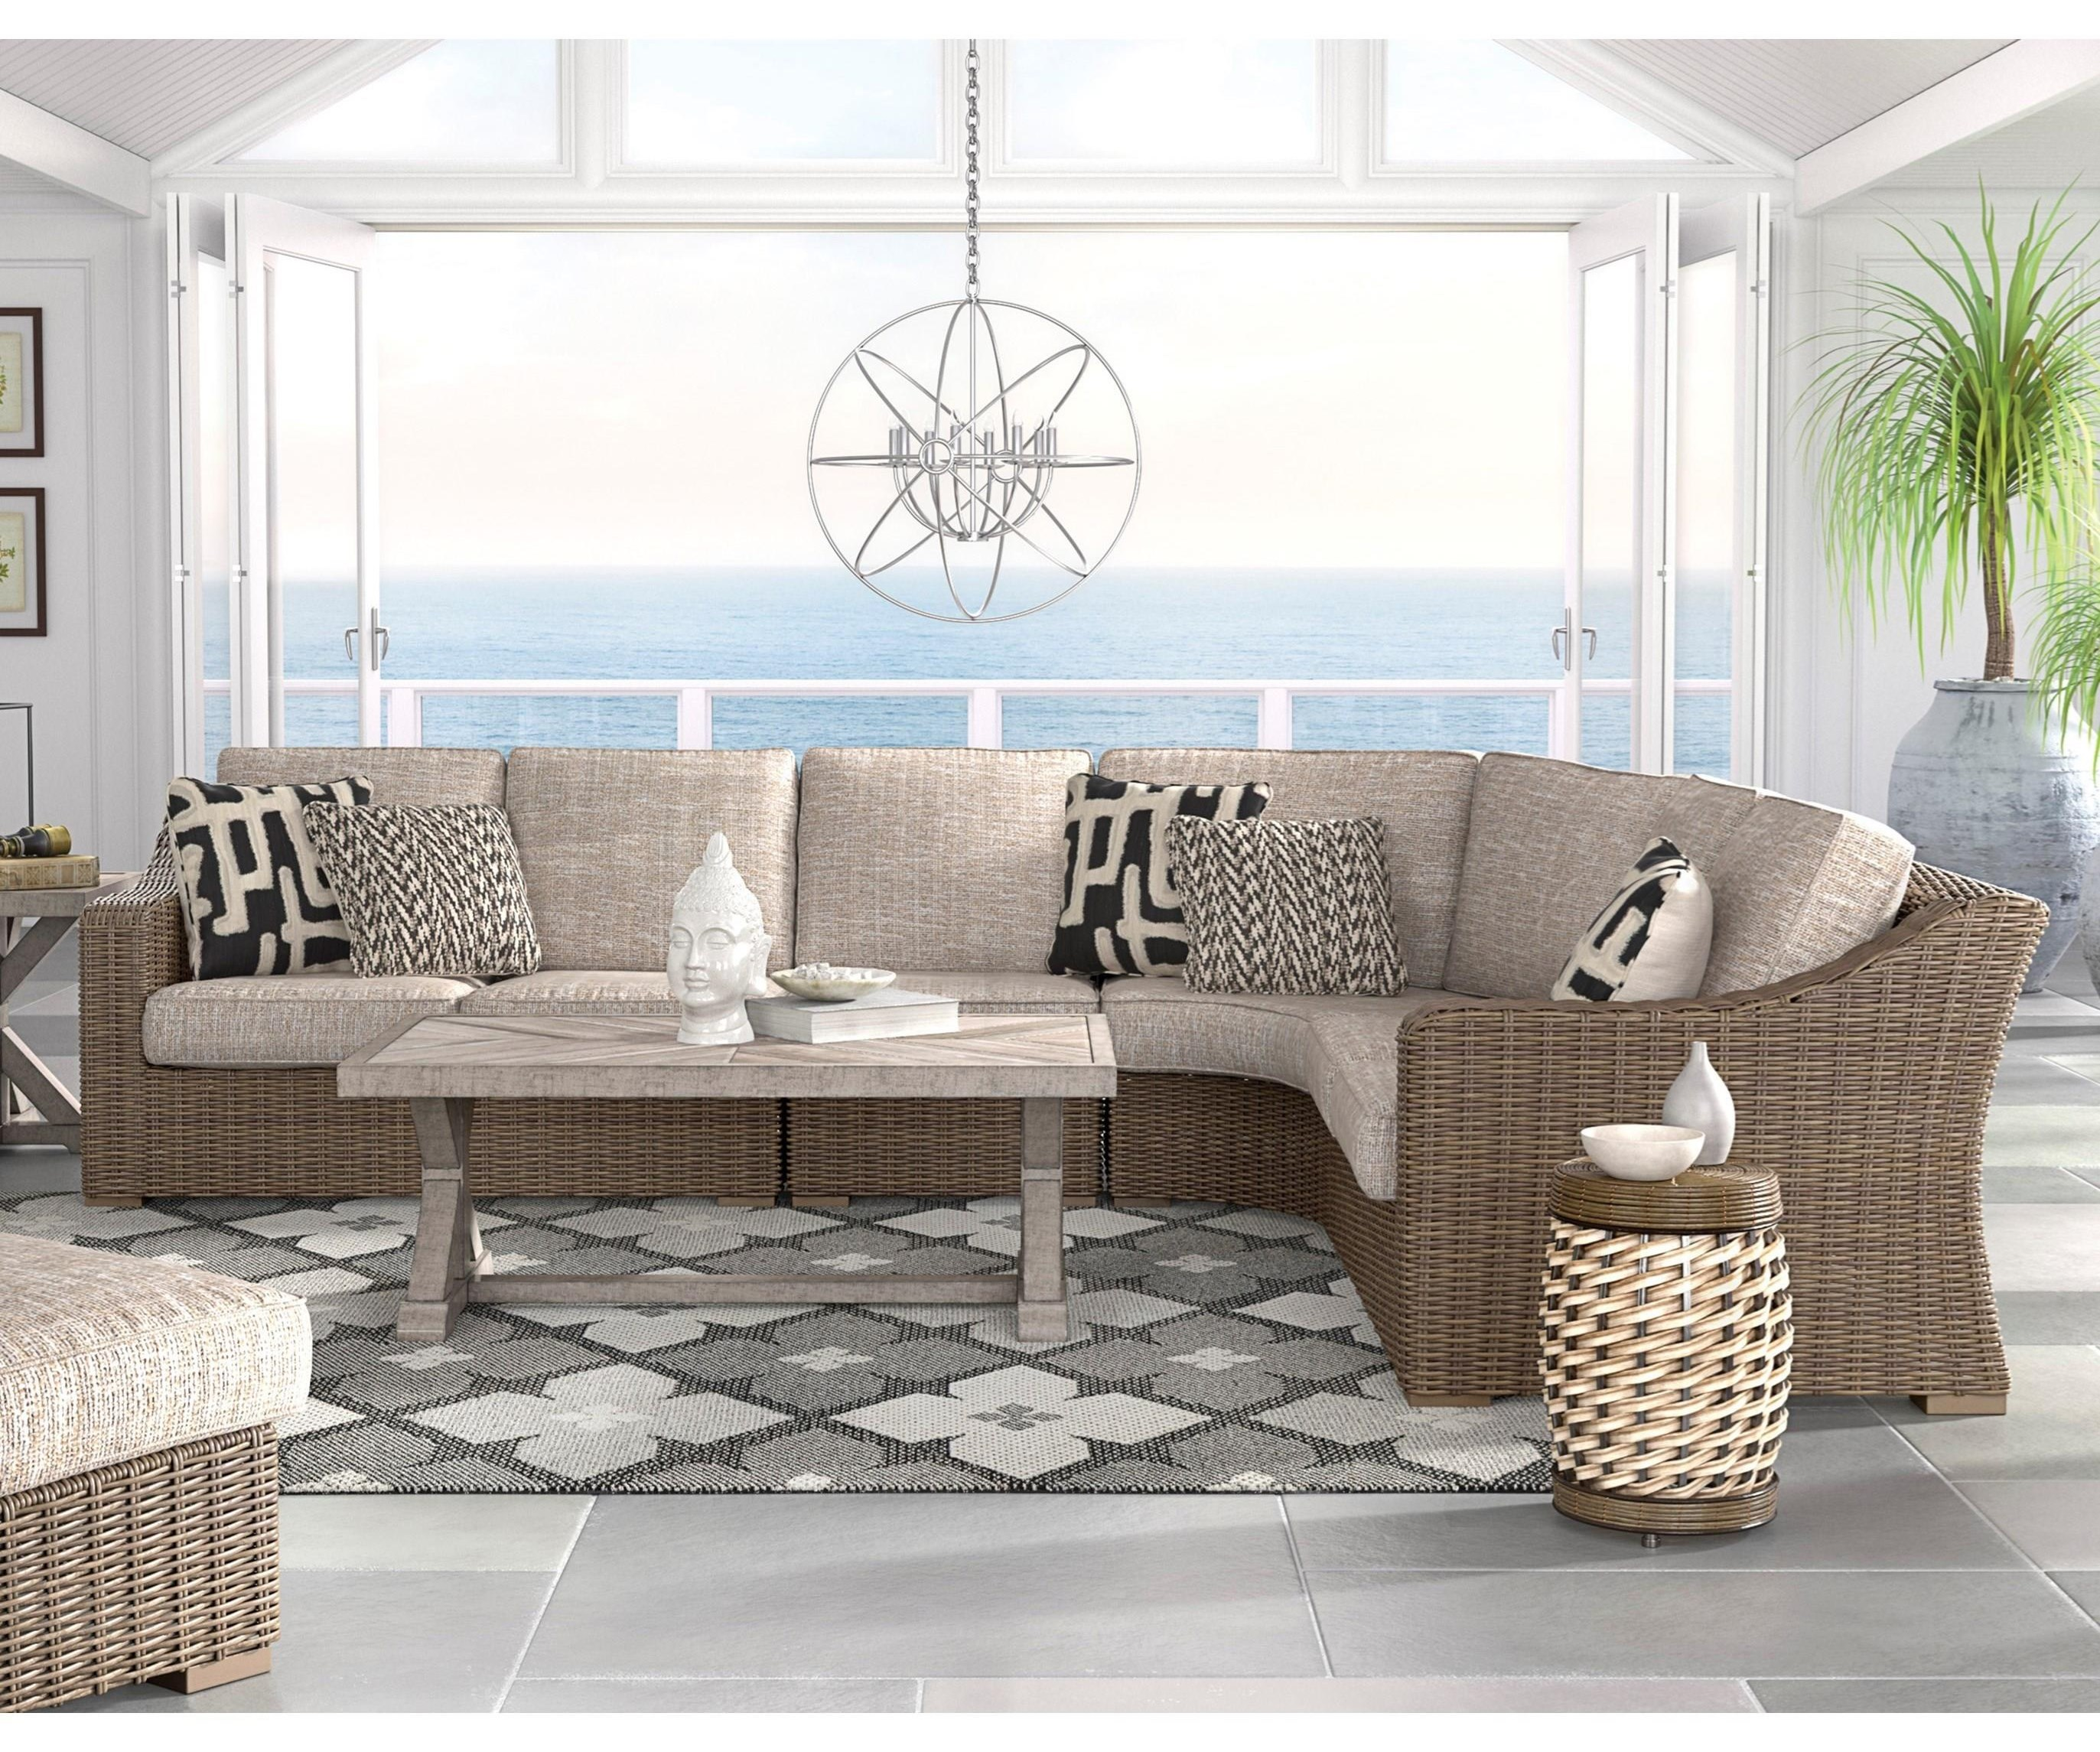 Beachcroft 3 Piece Resin Wicker Sectional Set by Signature Design by Ashley at Value City Furniture